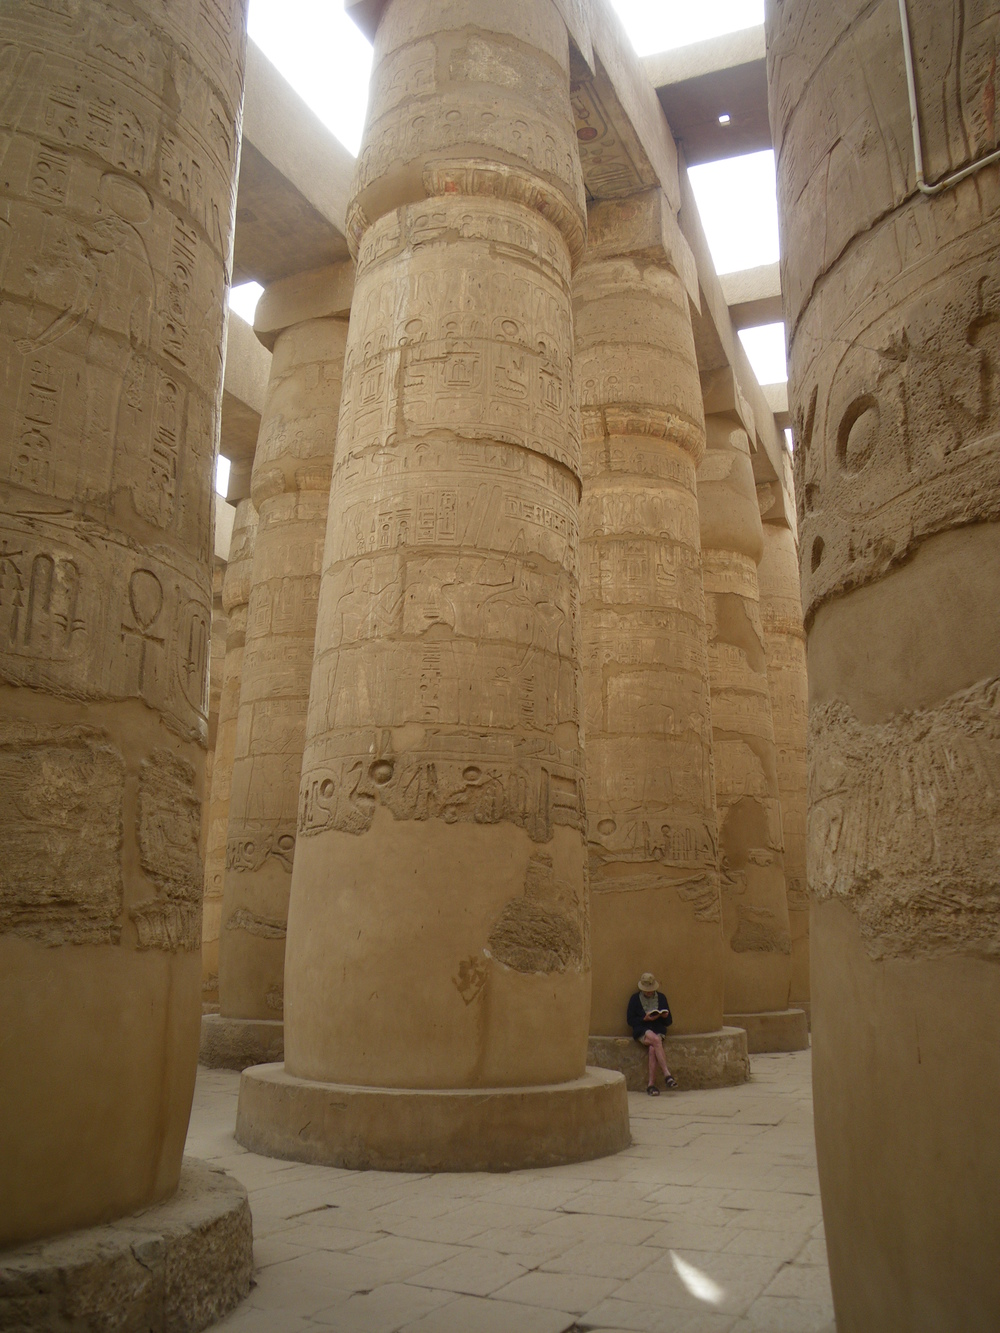 Figure 2.1. The Great Hypostyle Hall of the Karnak Temple Complex, Luxor, Egypt.